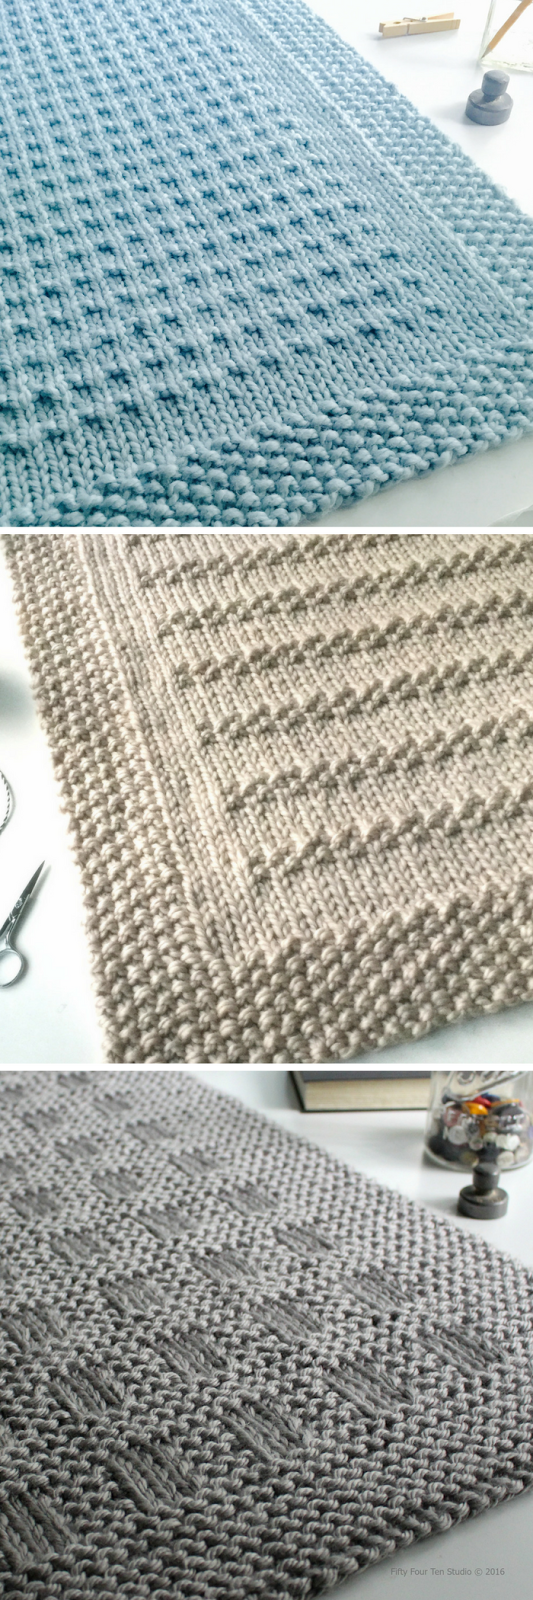 Designing Knitting Patterns Online